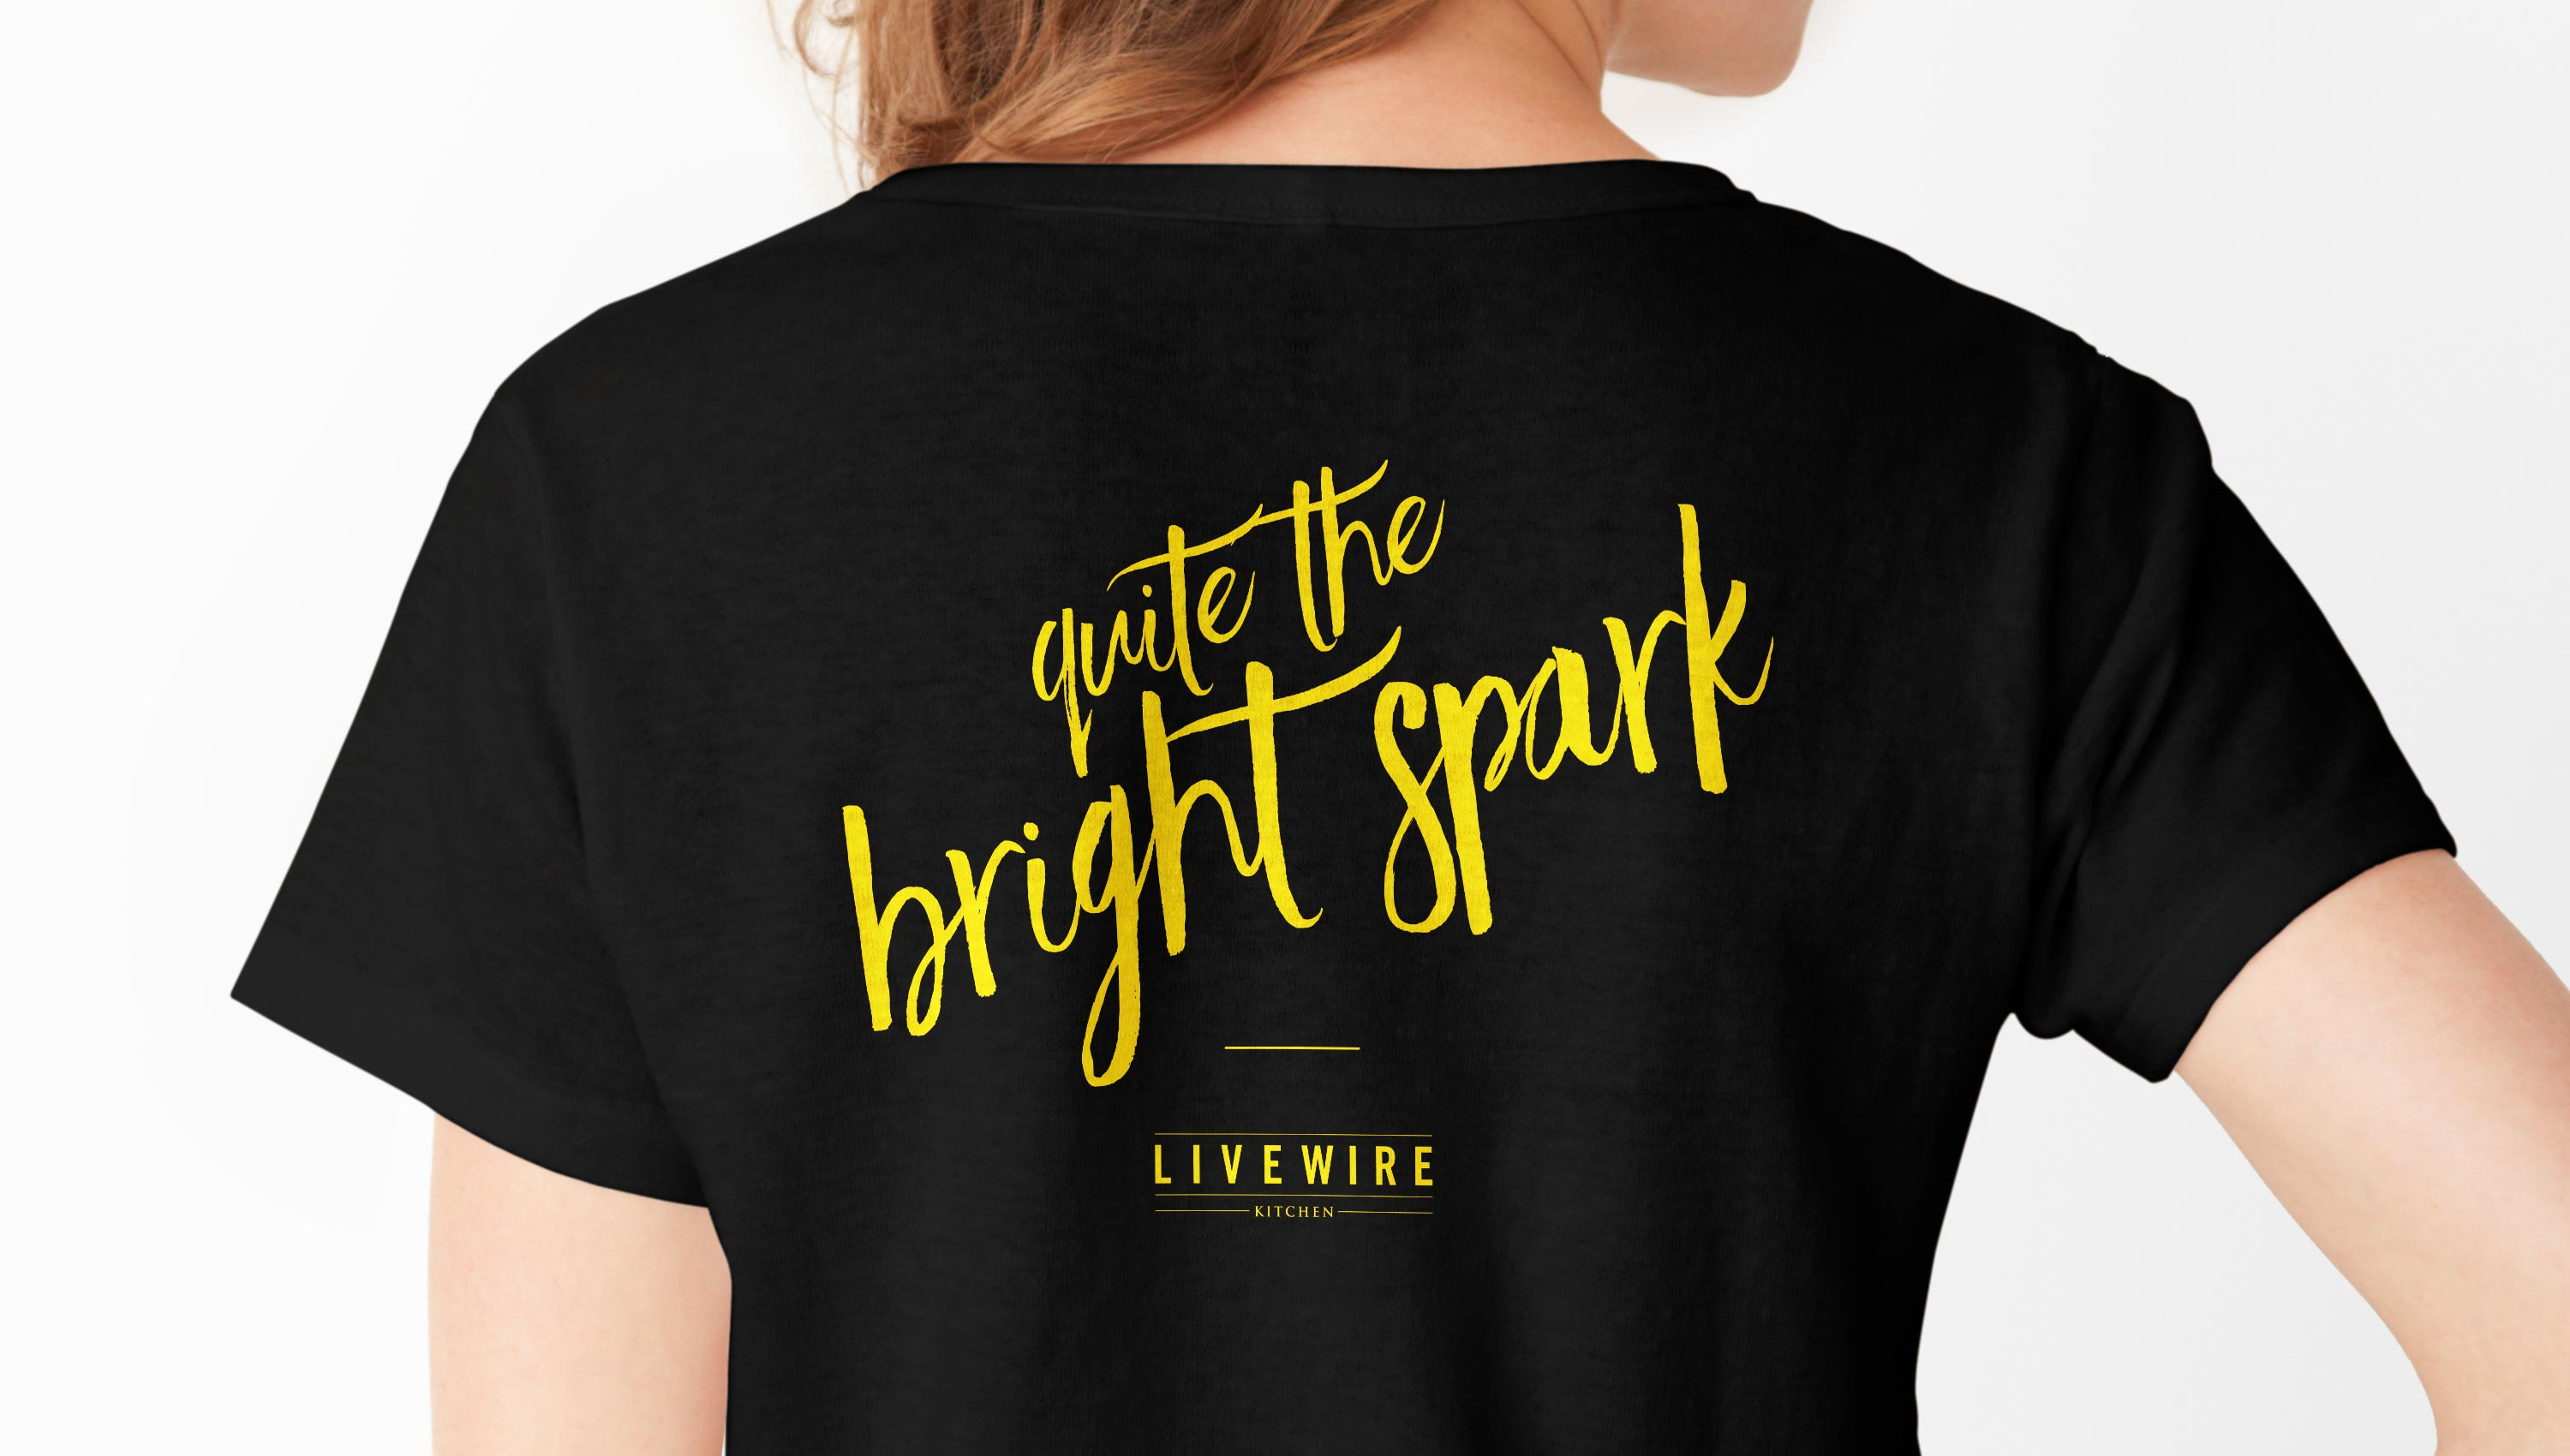 Design for livewire kitchen clothing